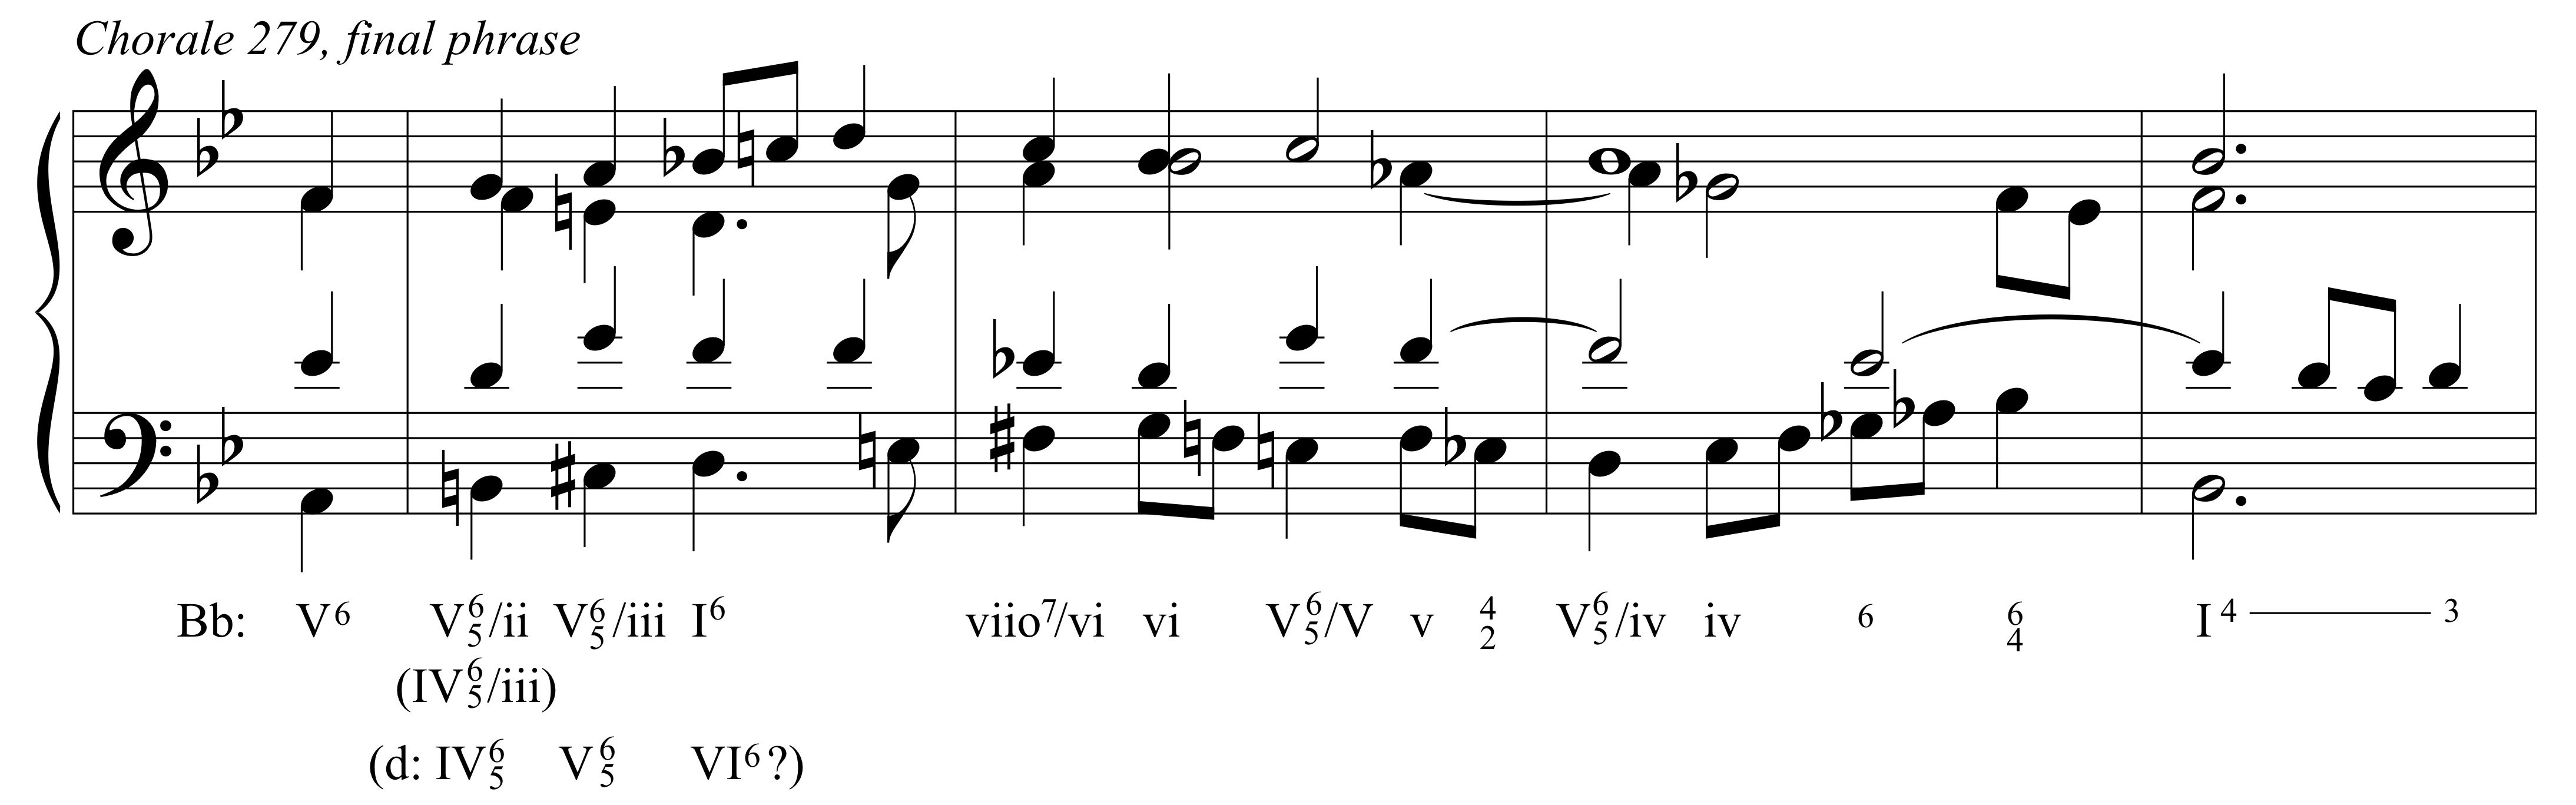 Bachs 12 tone chorale phrases for m is musick it hexwebz Choice Image